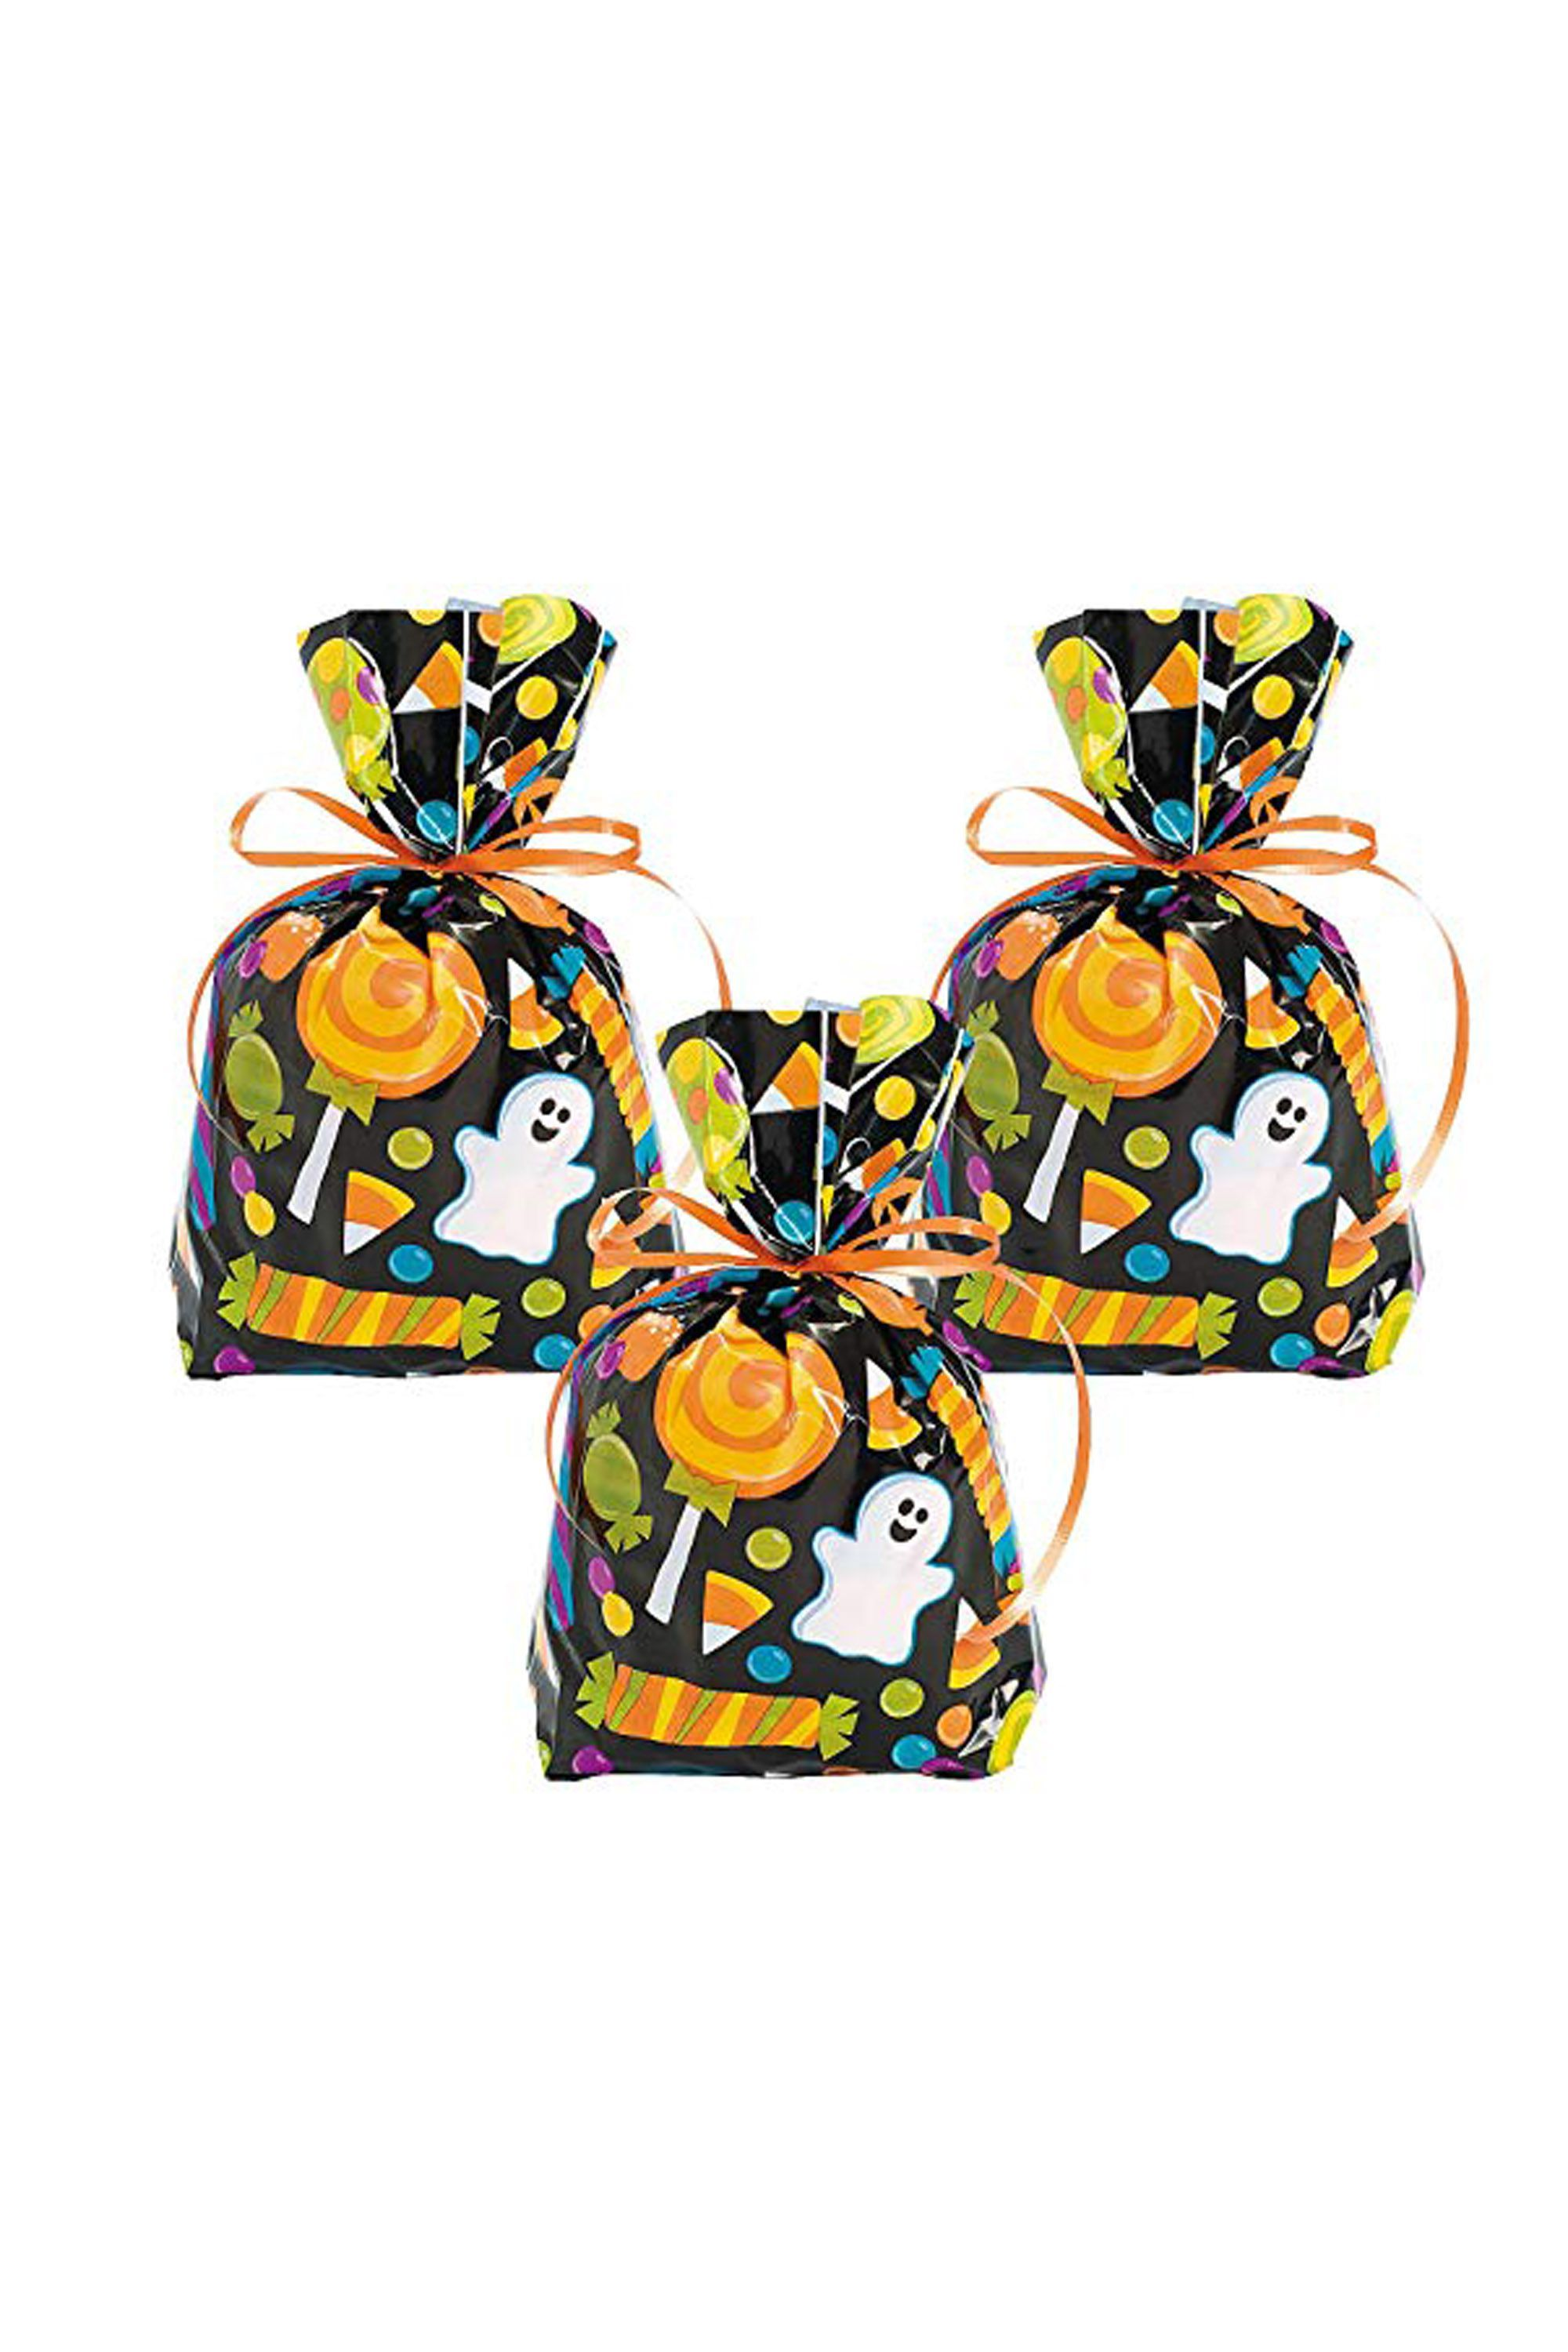 12 halloween treat bags - goodie bags for candy and trick-or-treating